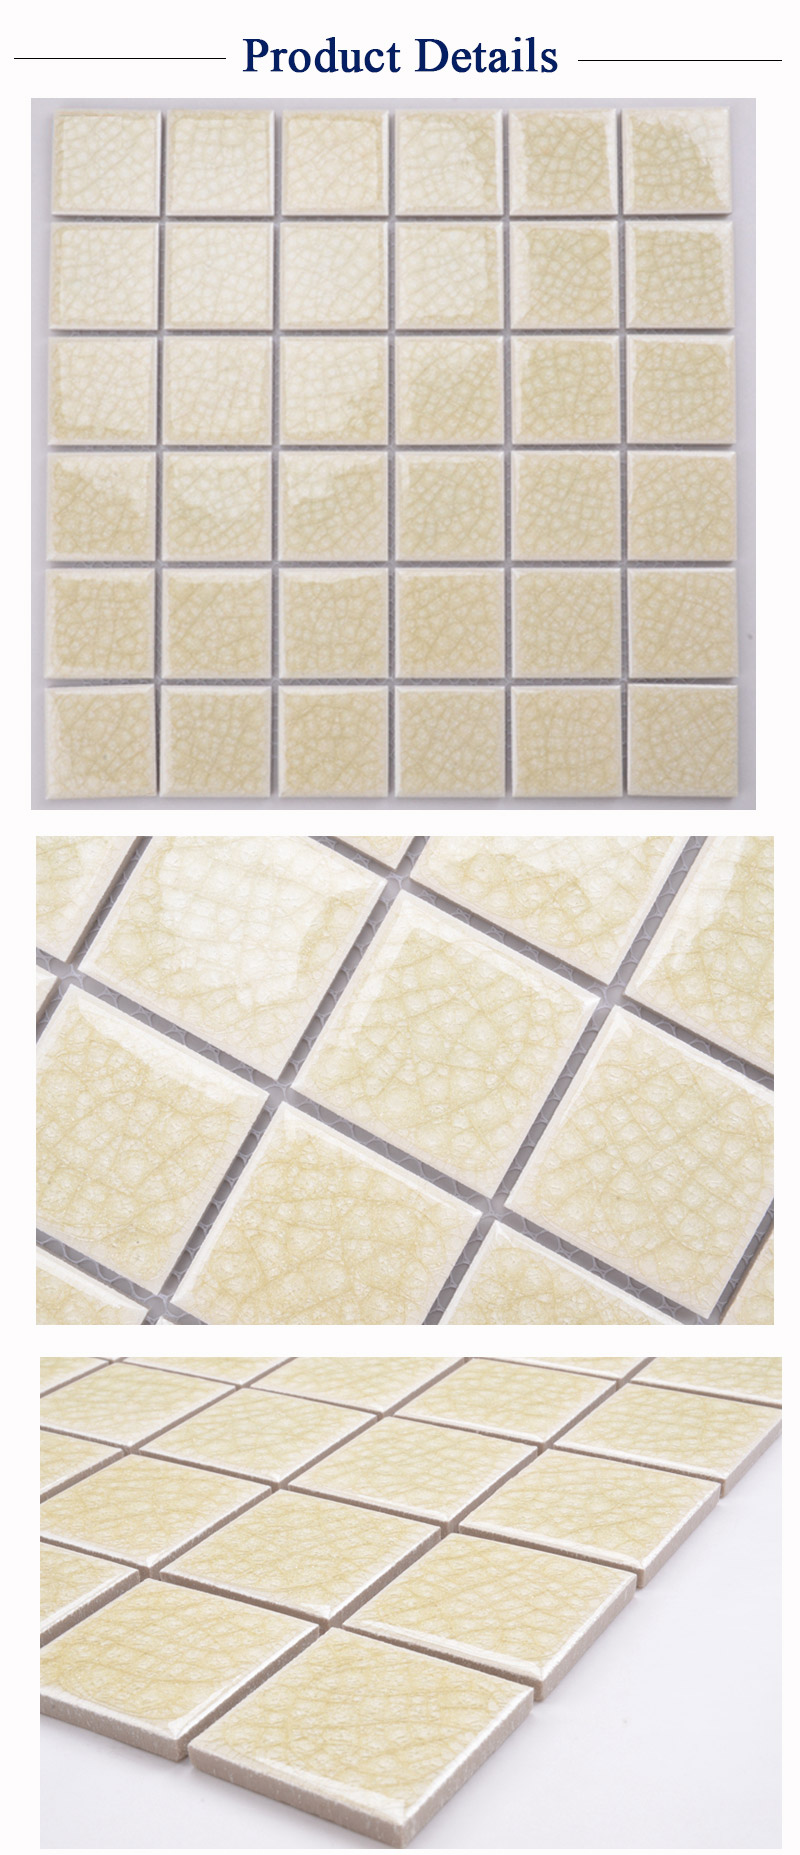 2x2' yellow dubai swimming pool mosaic tiles